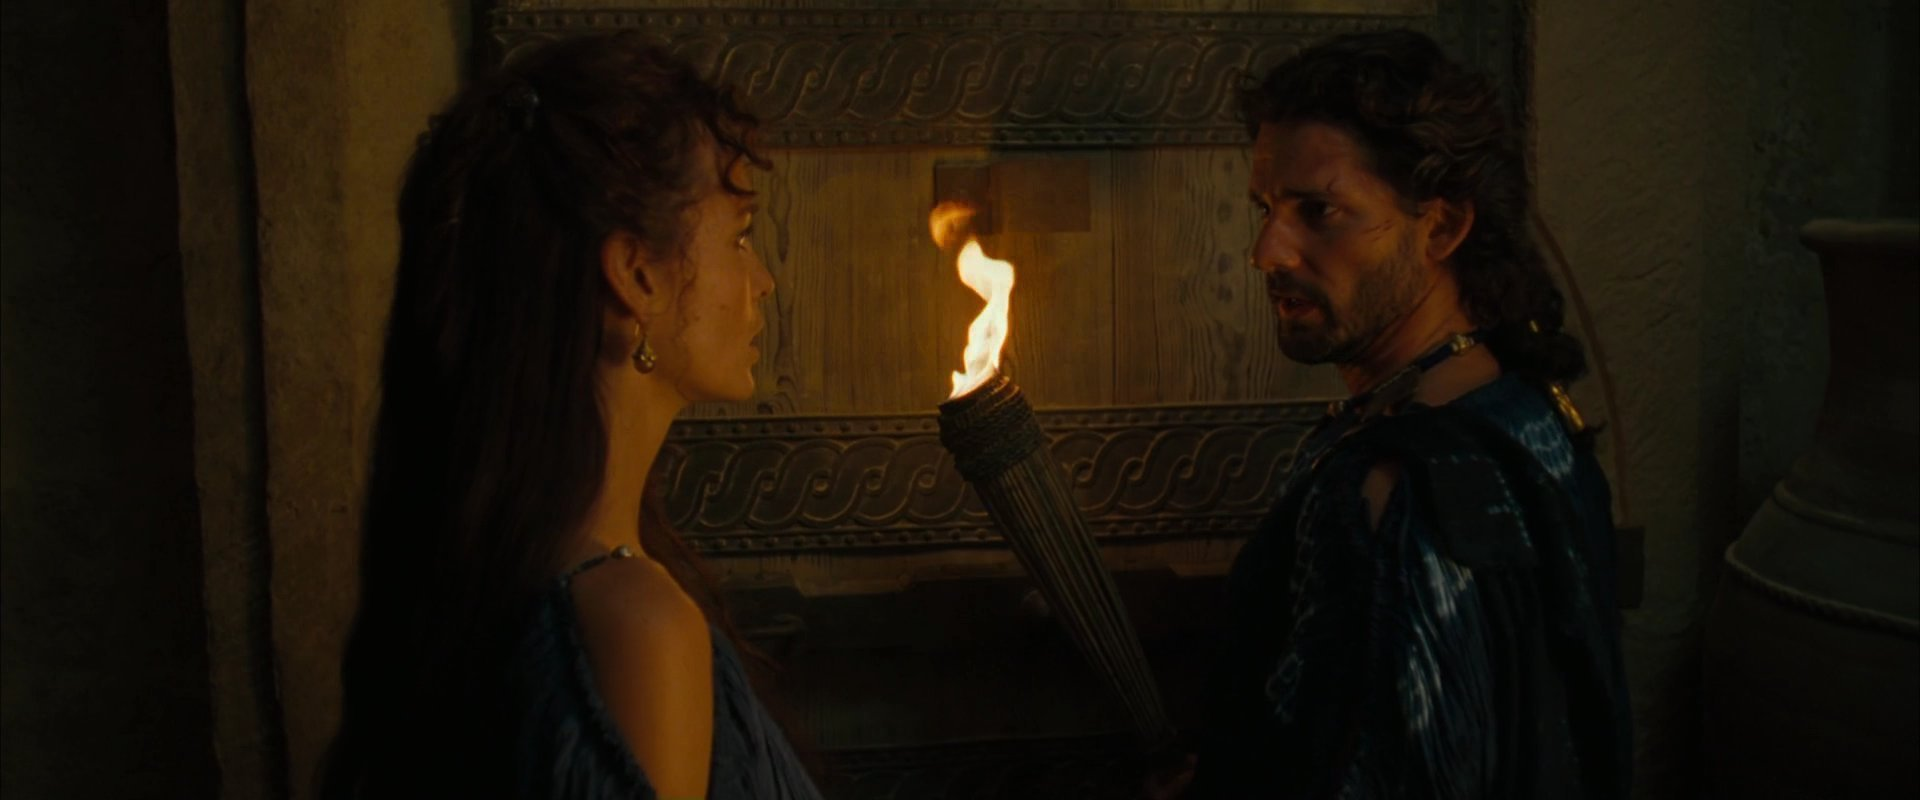 hector and andromache relationship questions